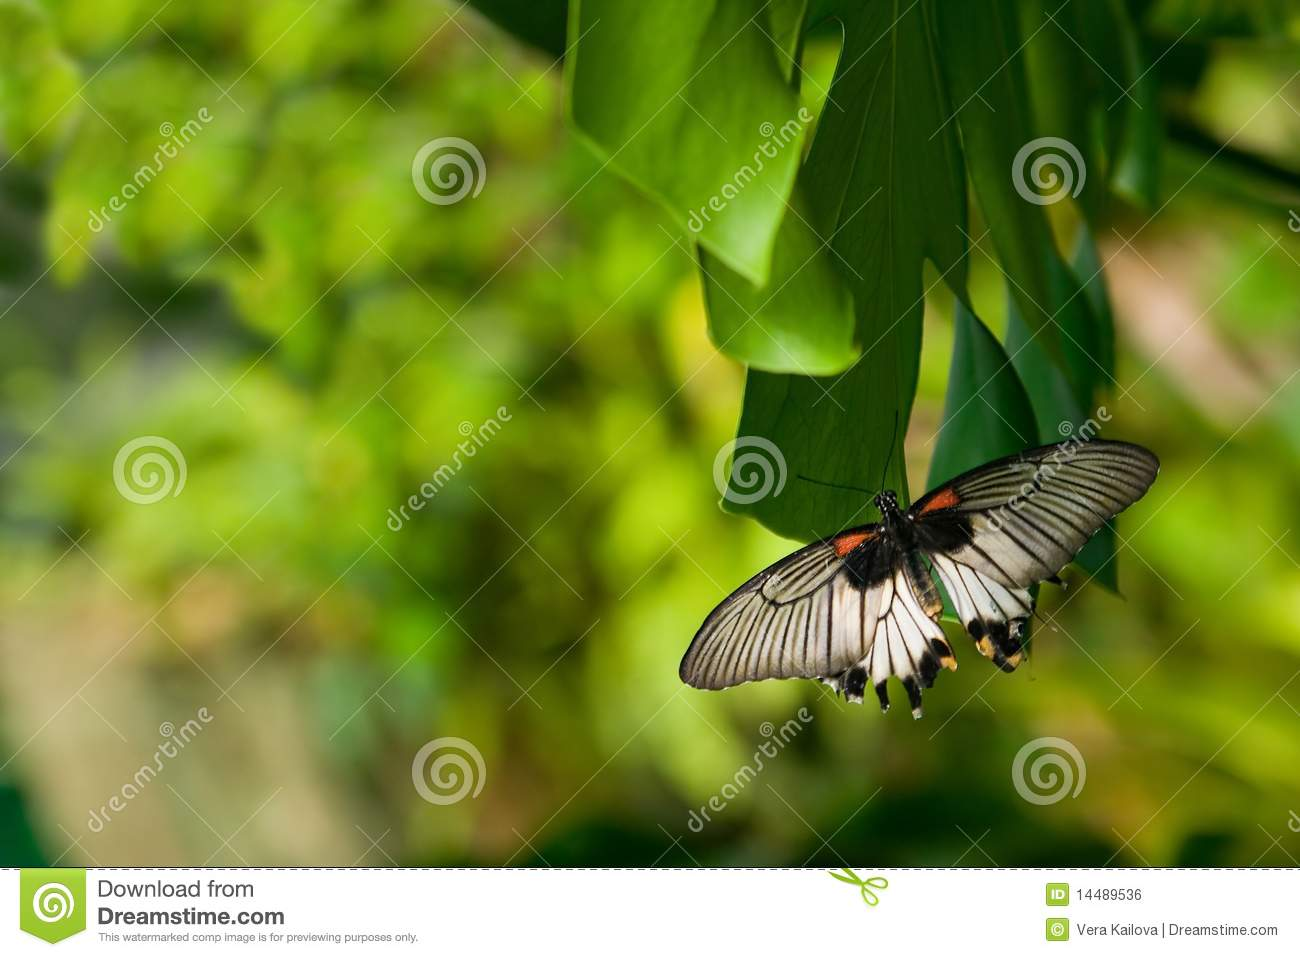 The Tropical Butterfly Royalty Free Stock Image - Image: 14489536